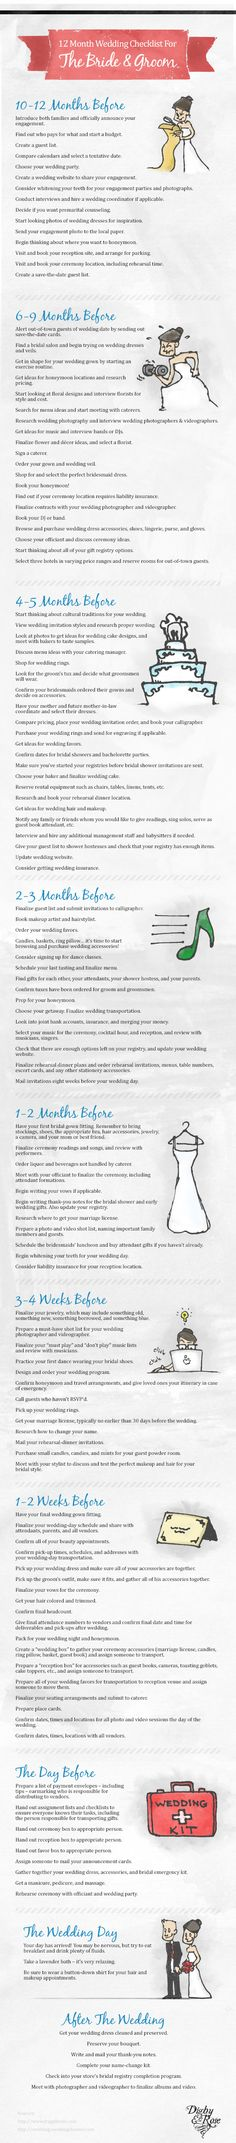 12 Month Wedding Checklist... may be helpful? except my timeline is not a year its 6 monthsss